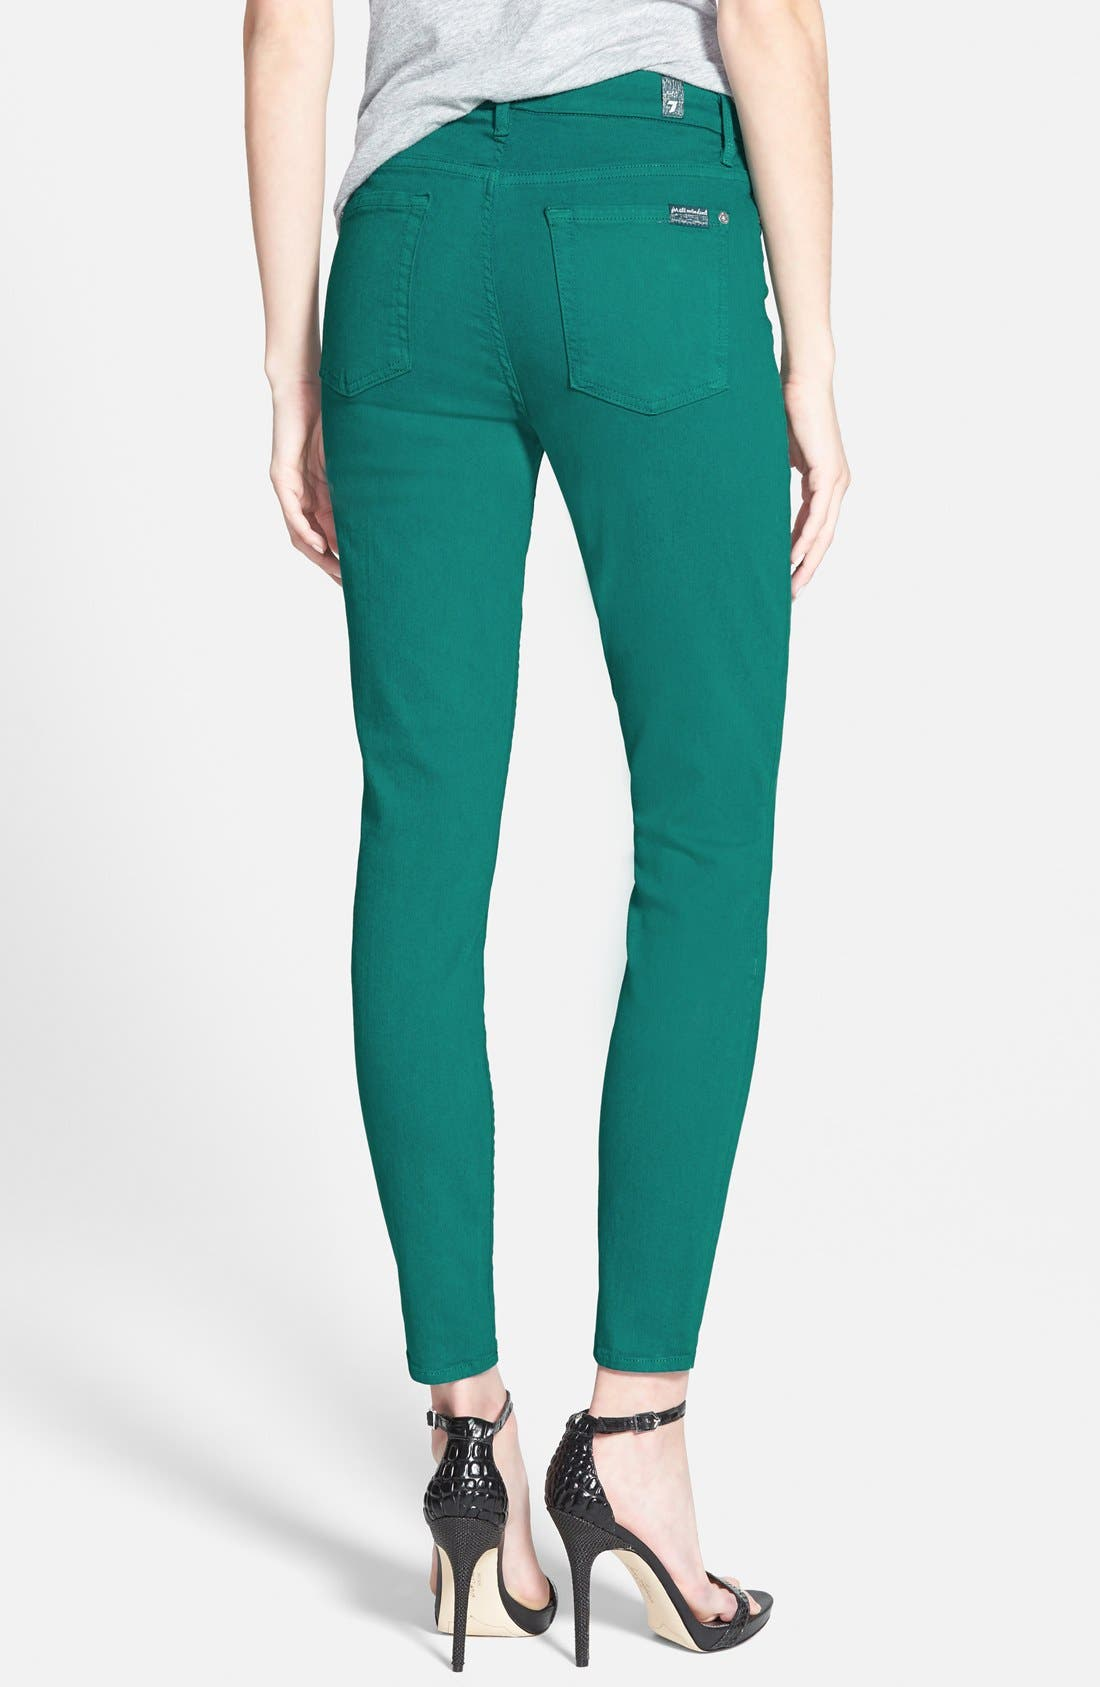 Alternate Image 2  - 7 For All Mankind® High Rise Ankle Skinny Jeans (Teal Green)